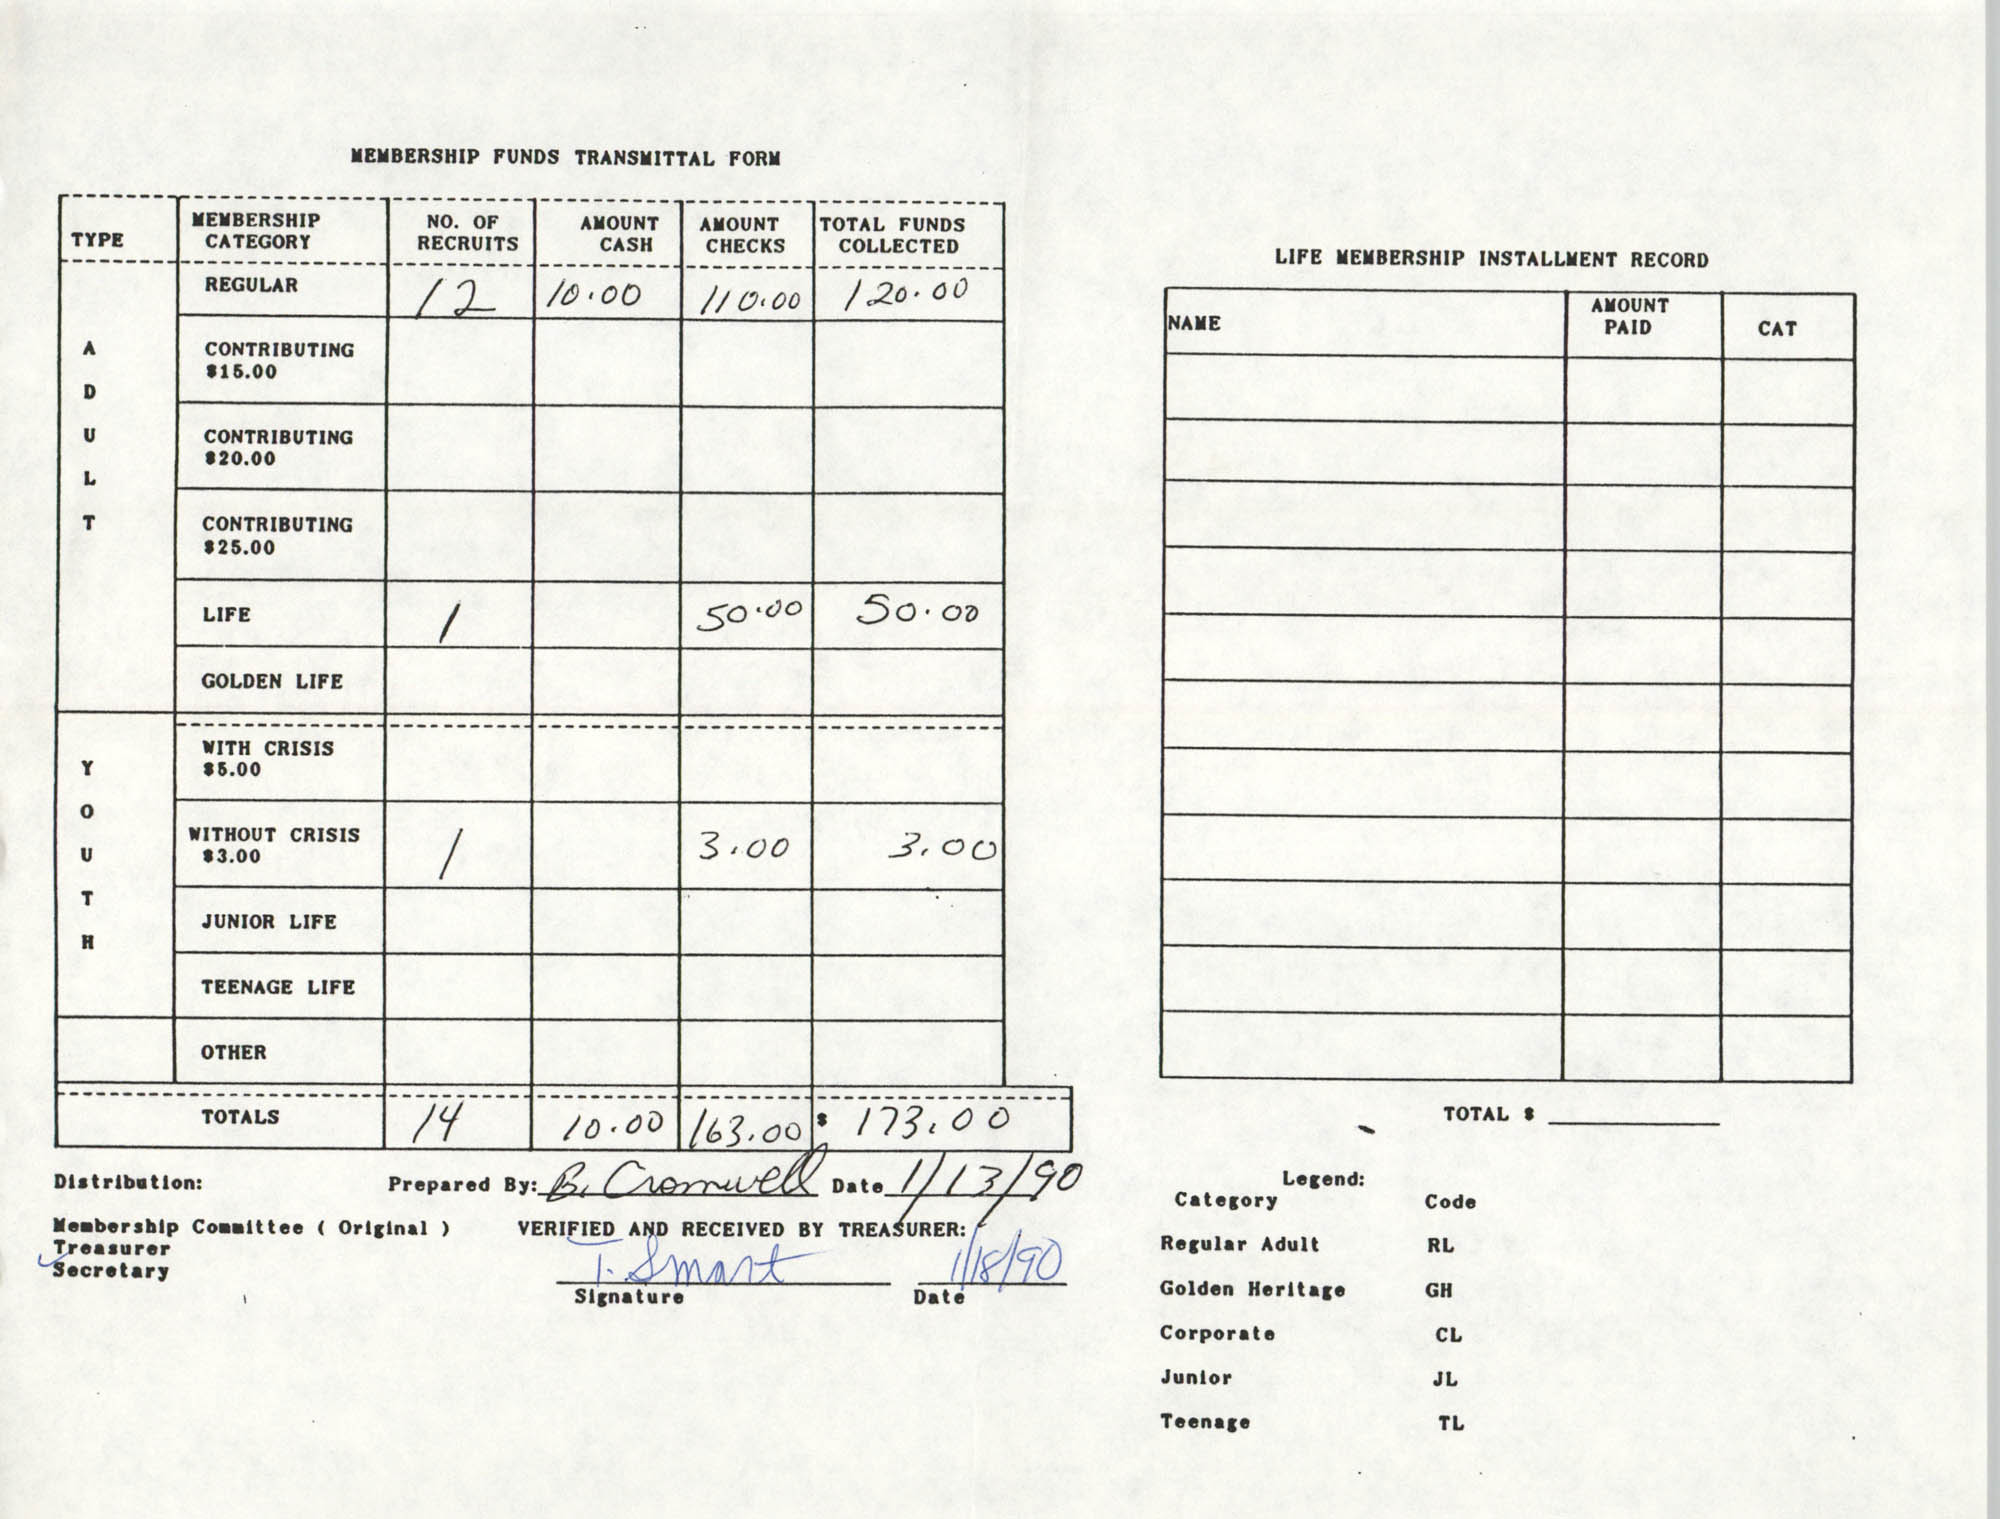 Charleston Branch of the NAACP Funds Transmittal Forms, January 1990, Page 5